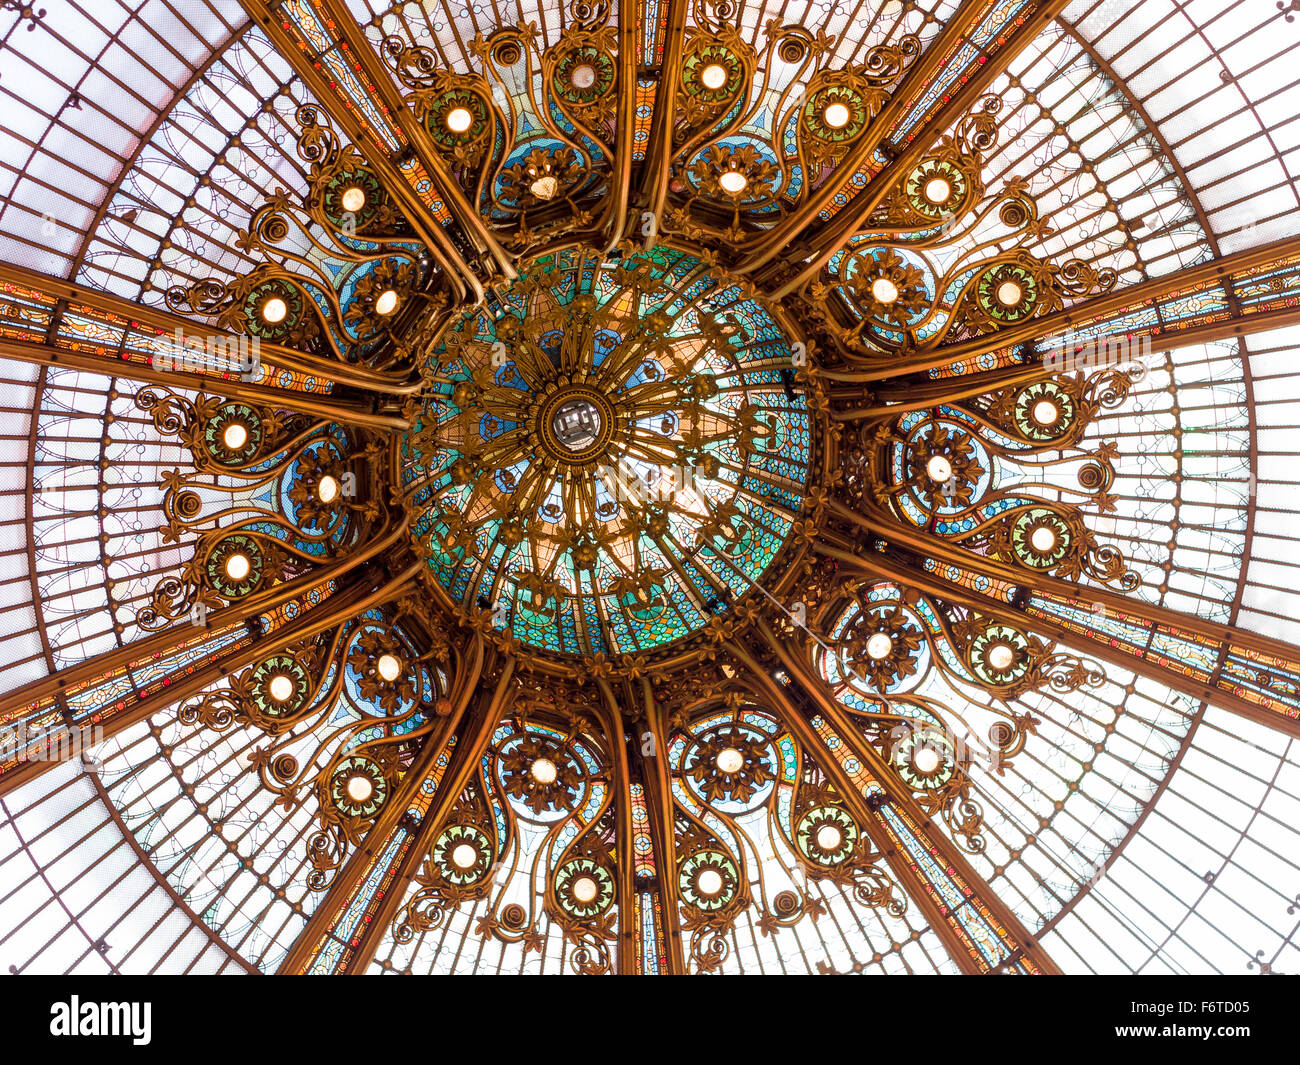 Center Medallion detail of the skylight at Galleries Lafayette. This huge glass ceiling is a focal point of the - Stock Image